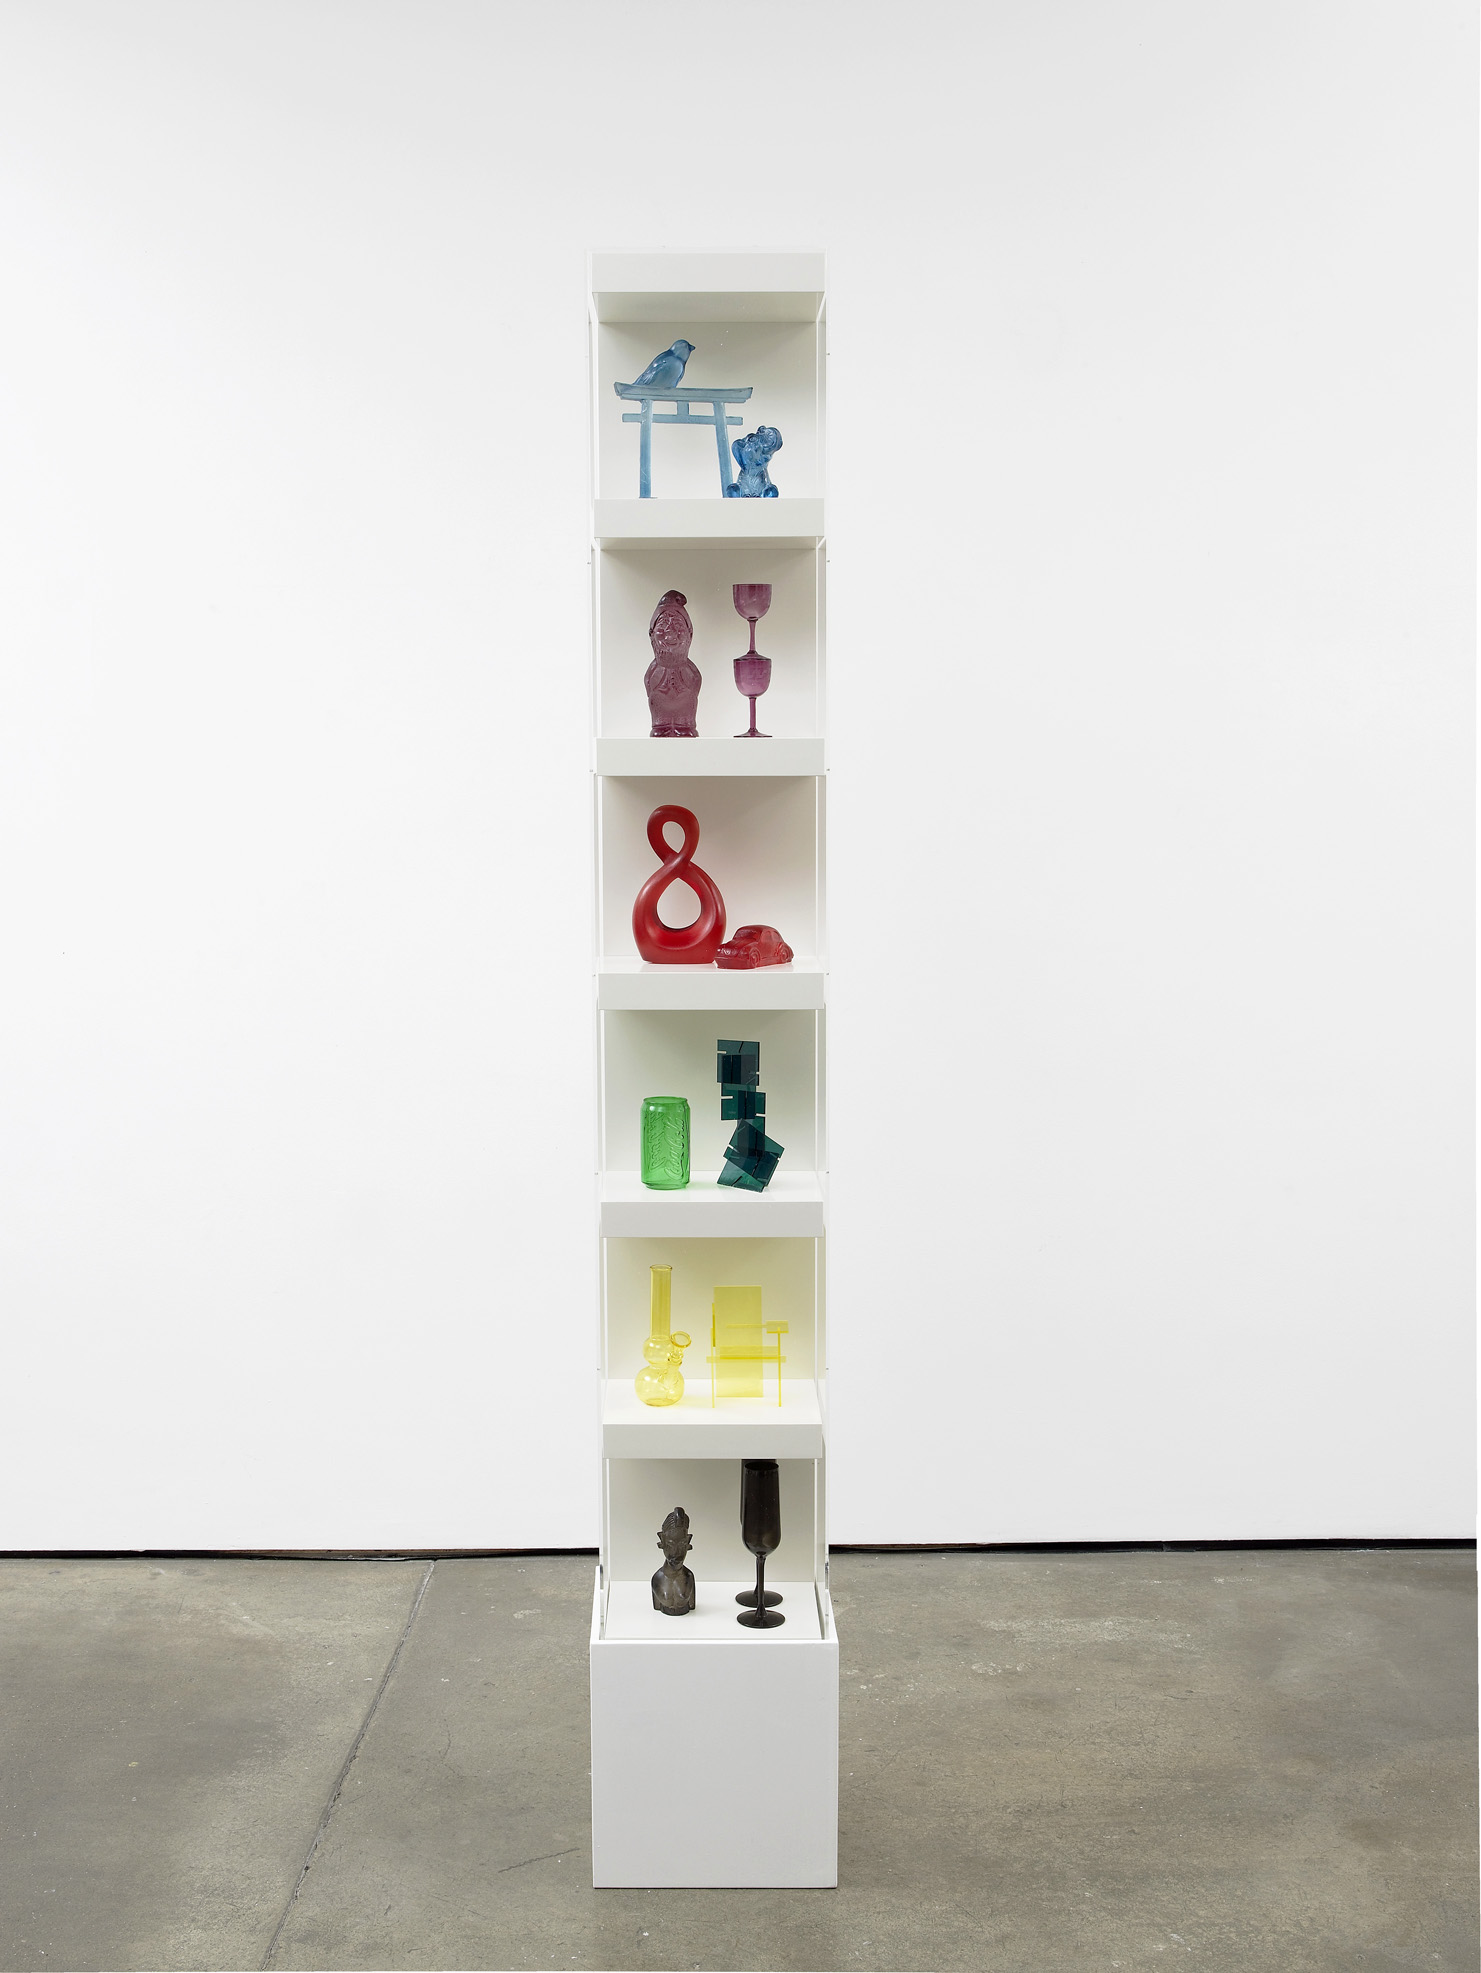 Matthew Darbyshire Untitled: Accessorised Column No. 5 2012 Plastic, glass, and resin components, shelving units, and perspex case 215 x 30 x 30 cm